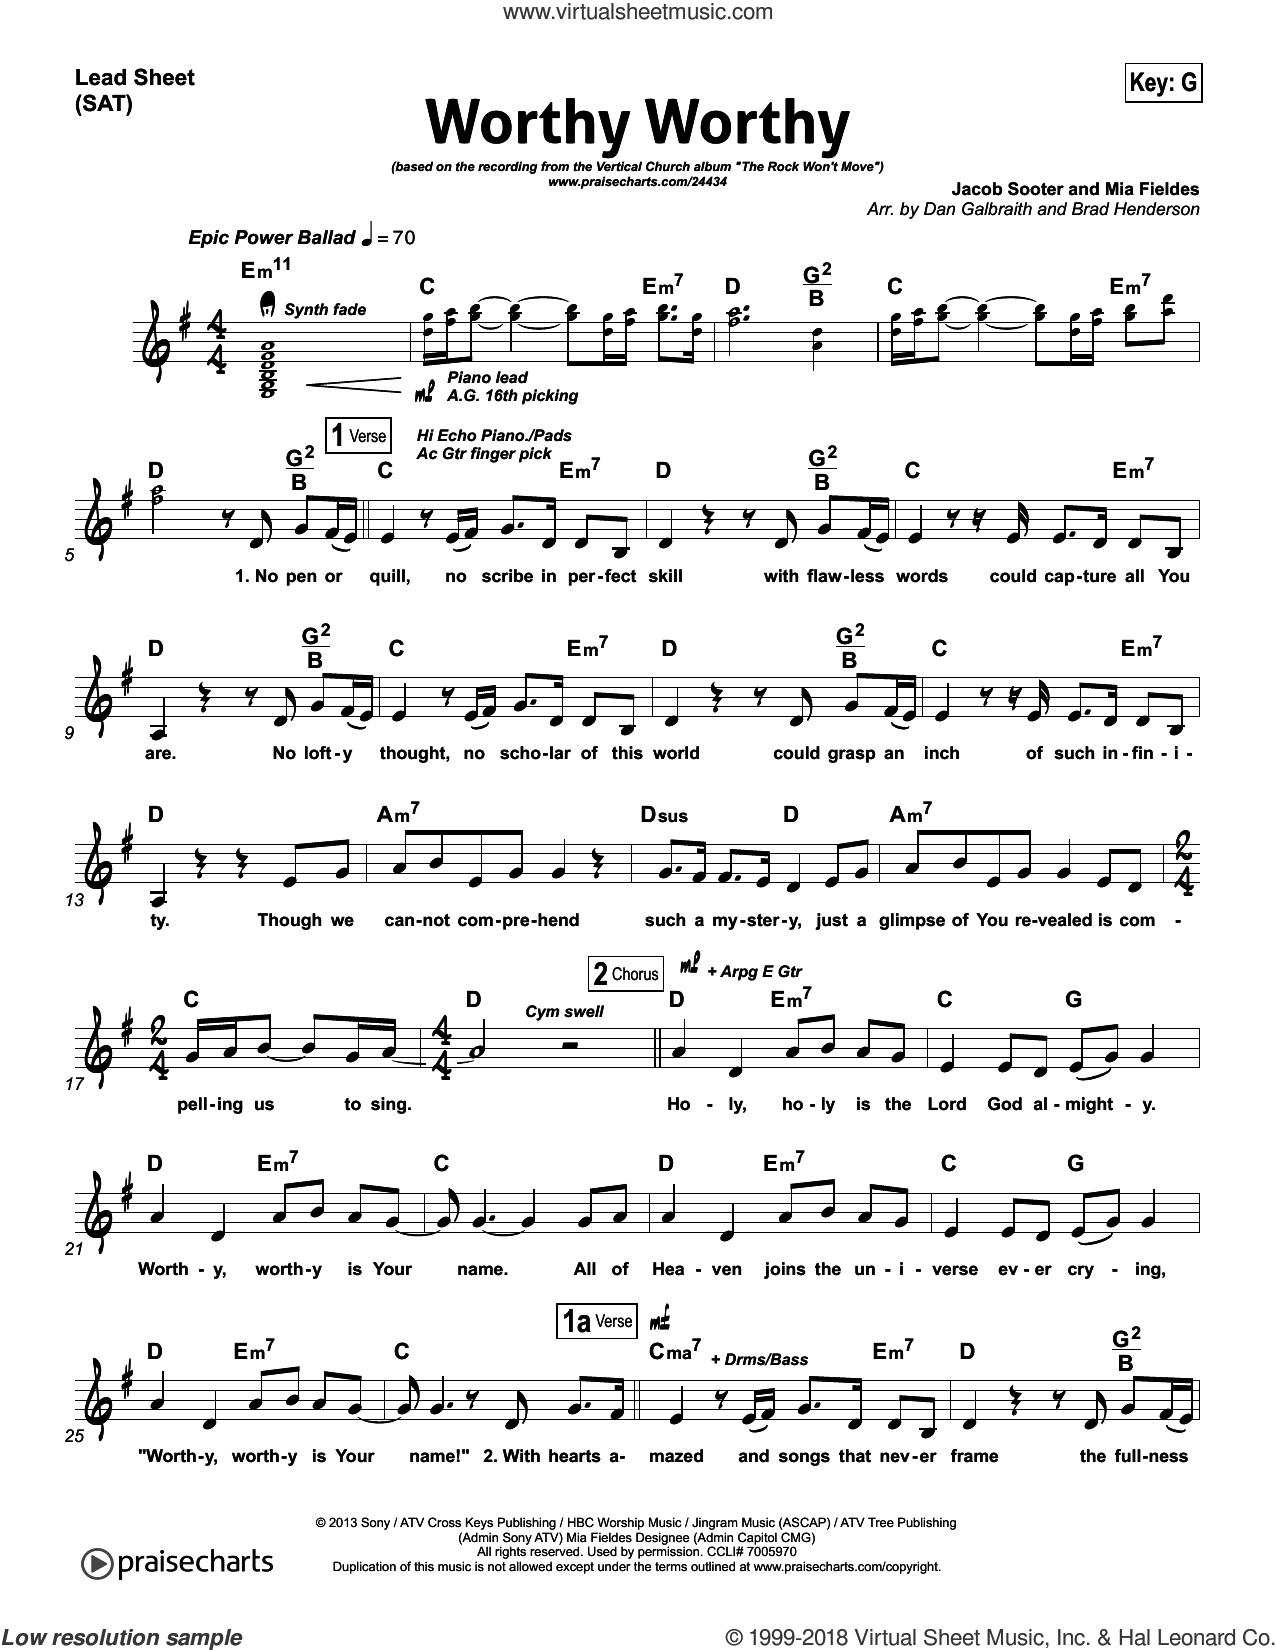 Worthy Worthy sheet music for voice and other instruments (fake book, orchestration) by Dan Galbraith and Mia Fieldes. Score Image Preview.